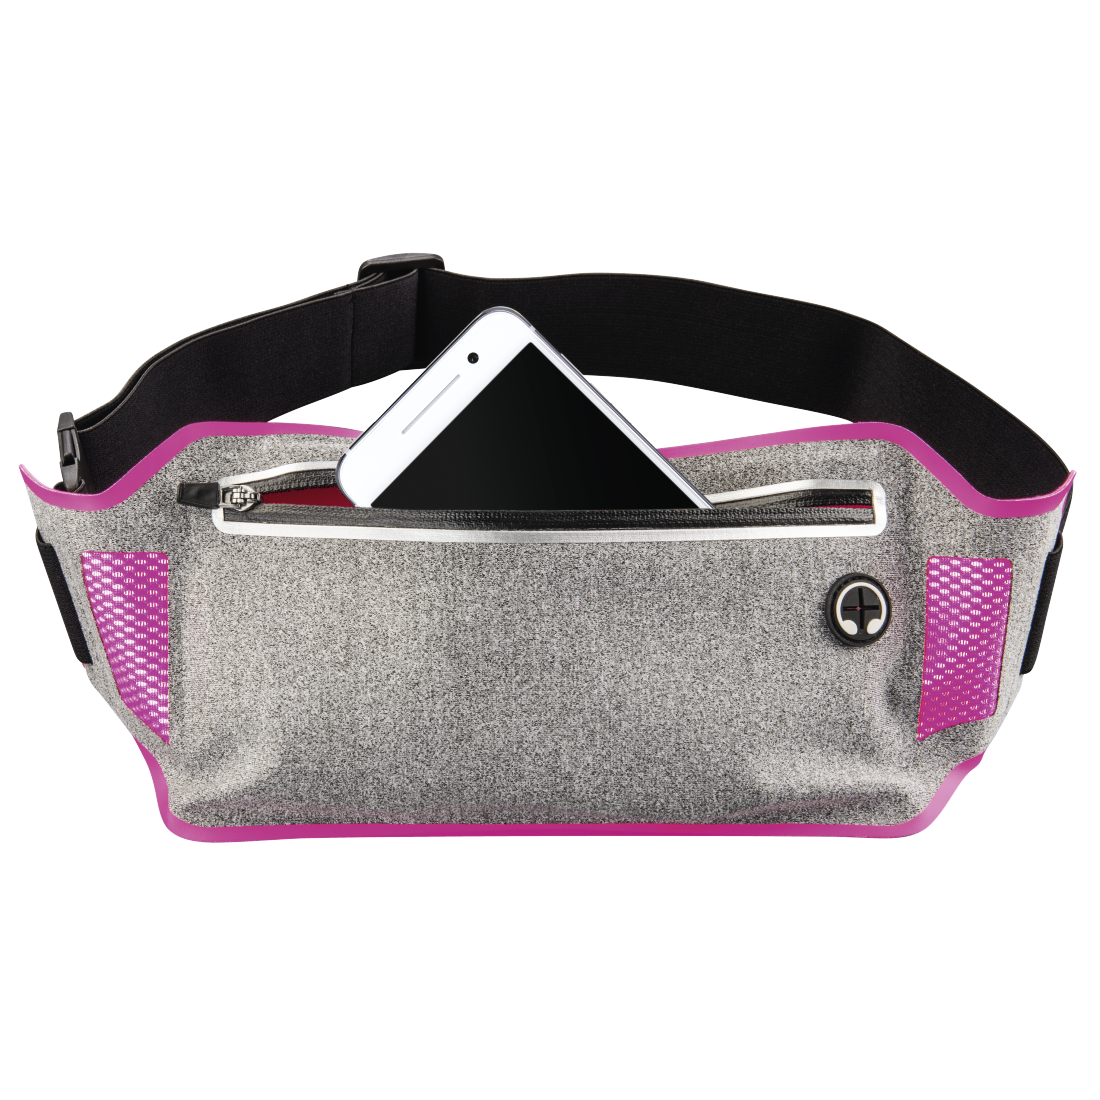 abx2 High-Res Image 2 - Hama, Running Sports Hip Pouch for Smartphones, grey/pink